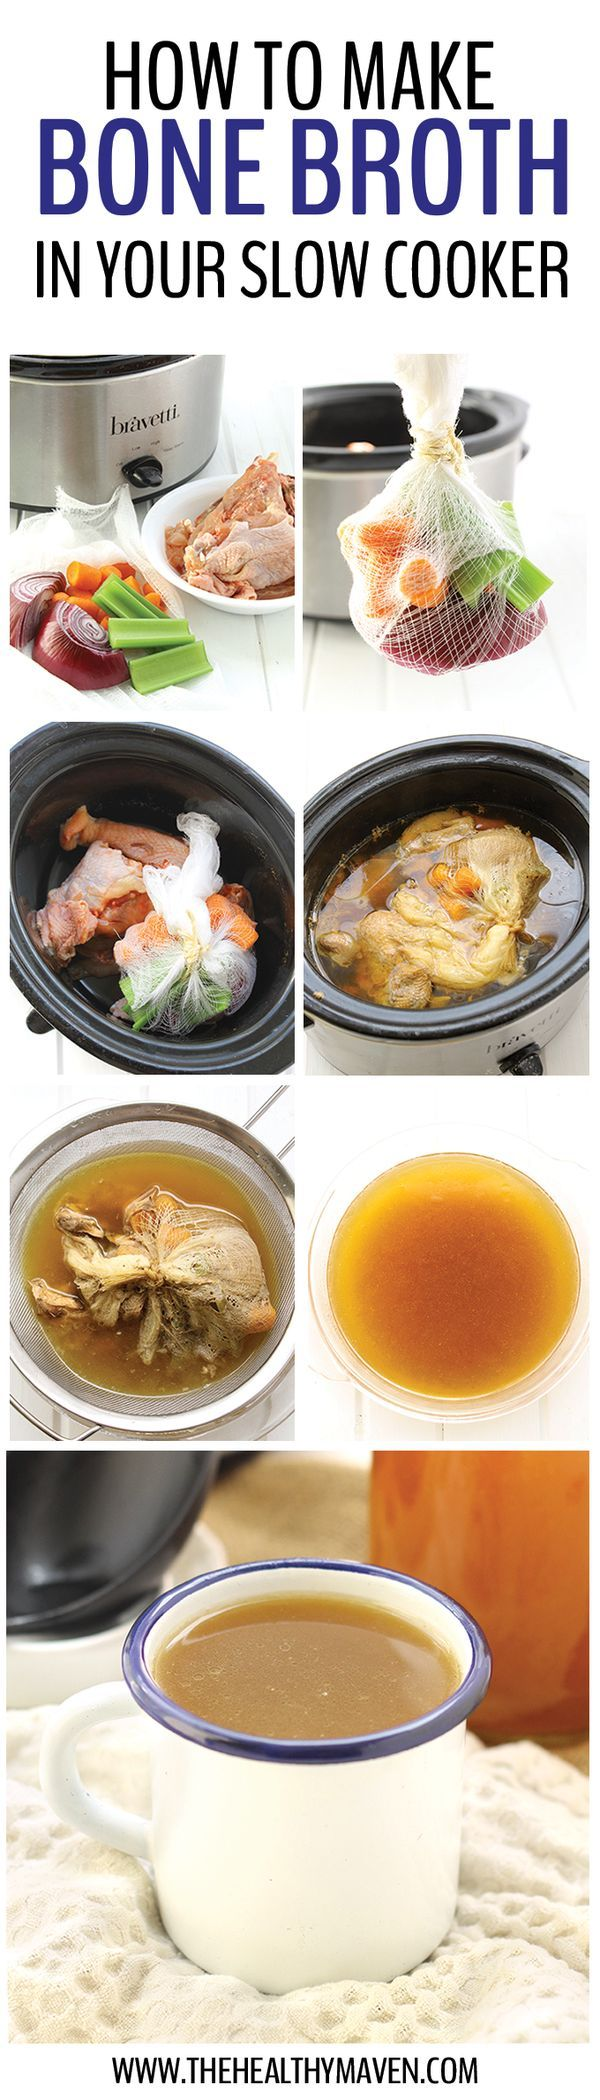 Learn how to make bone broth in your slow cooker, the hottest trend in the food world! It requires minimal ingredients and steps but a whole lot of patience as your house fills with the delicious scent of homemade broth.